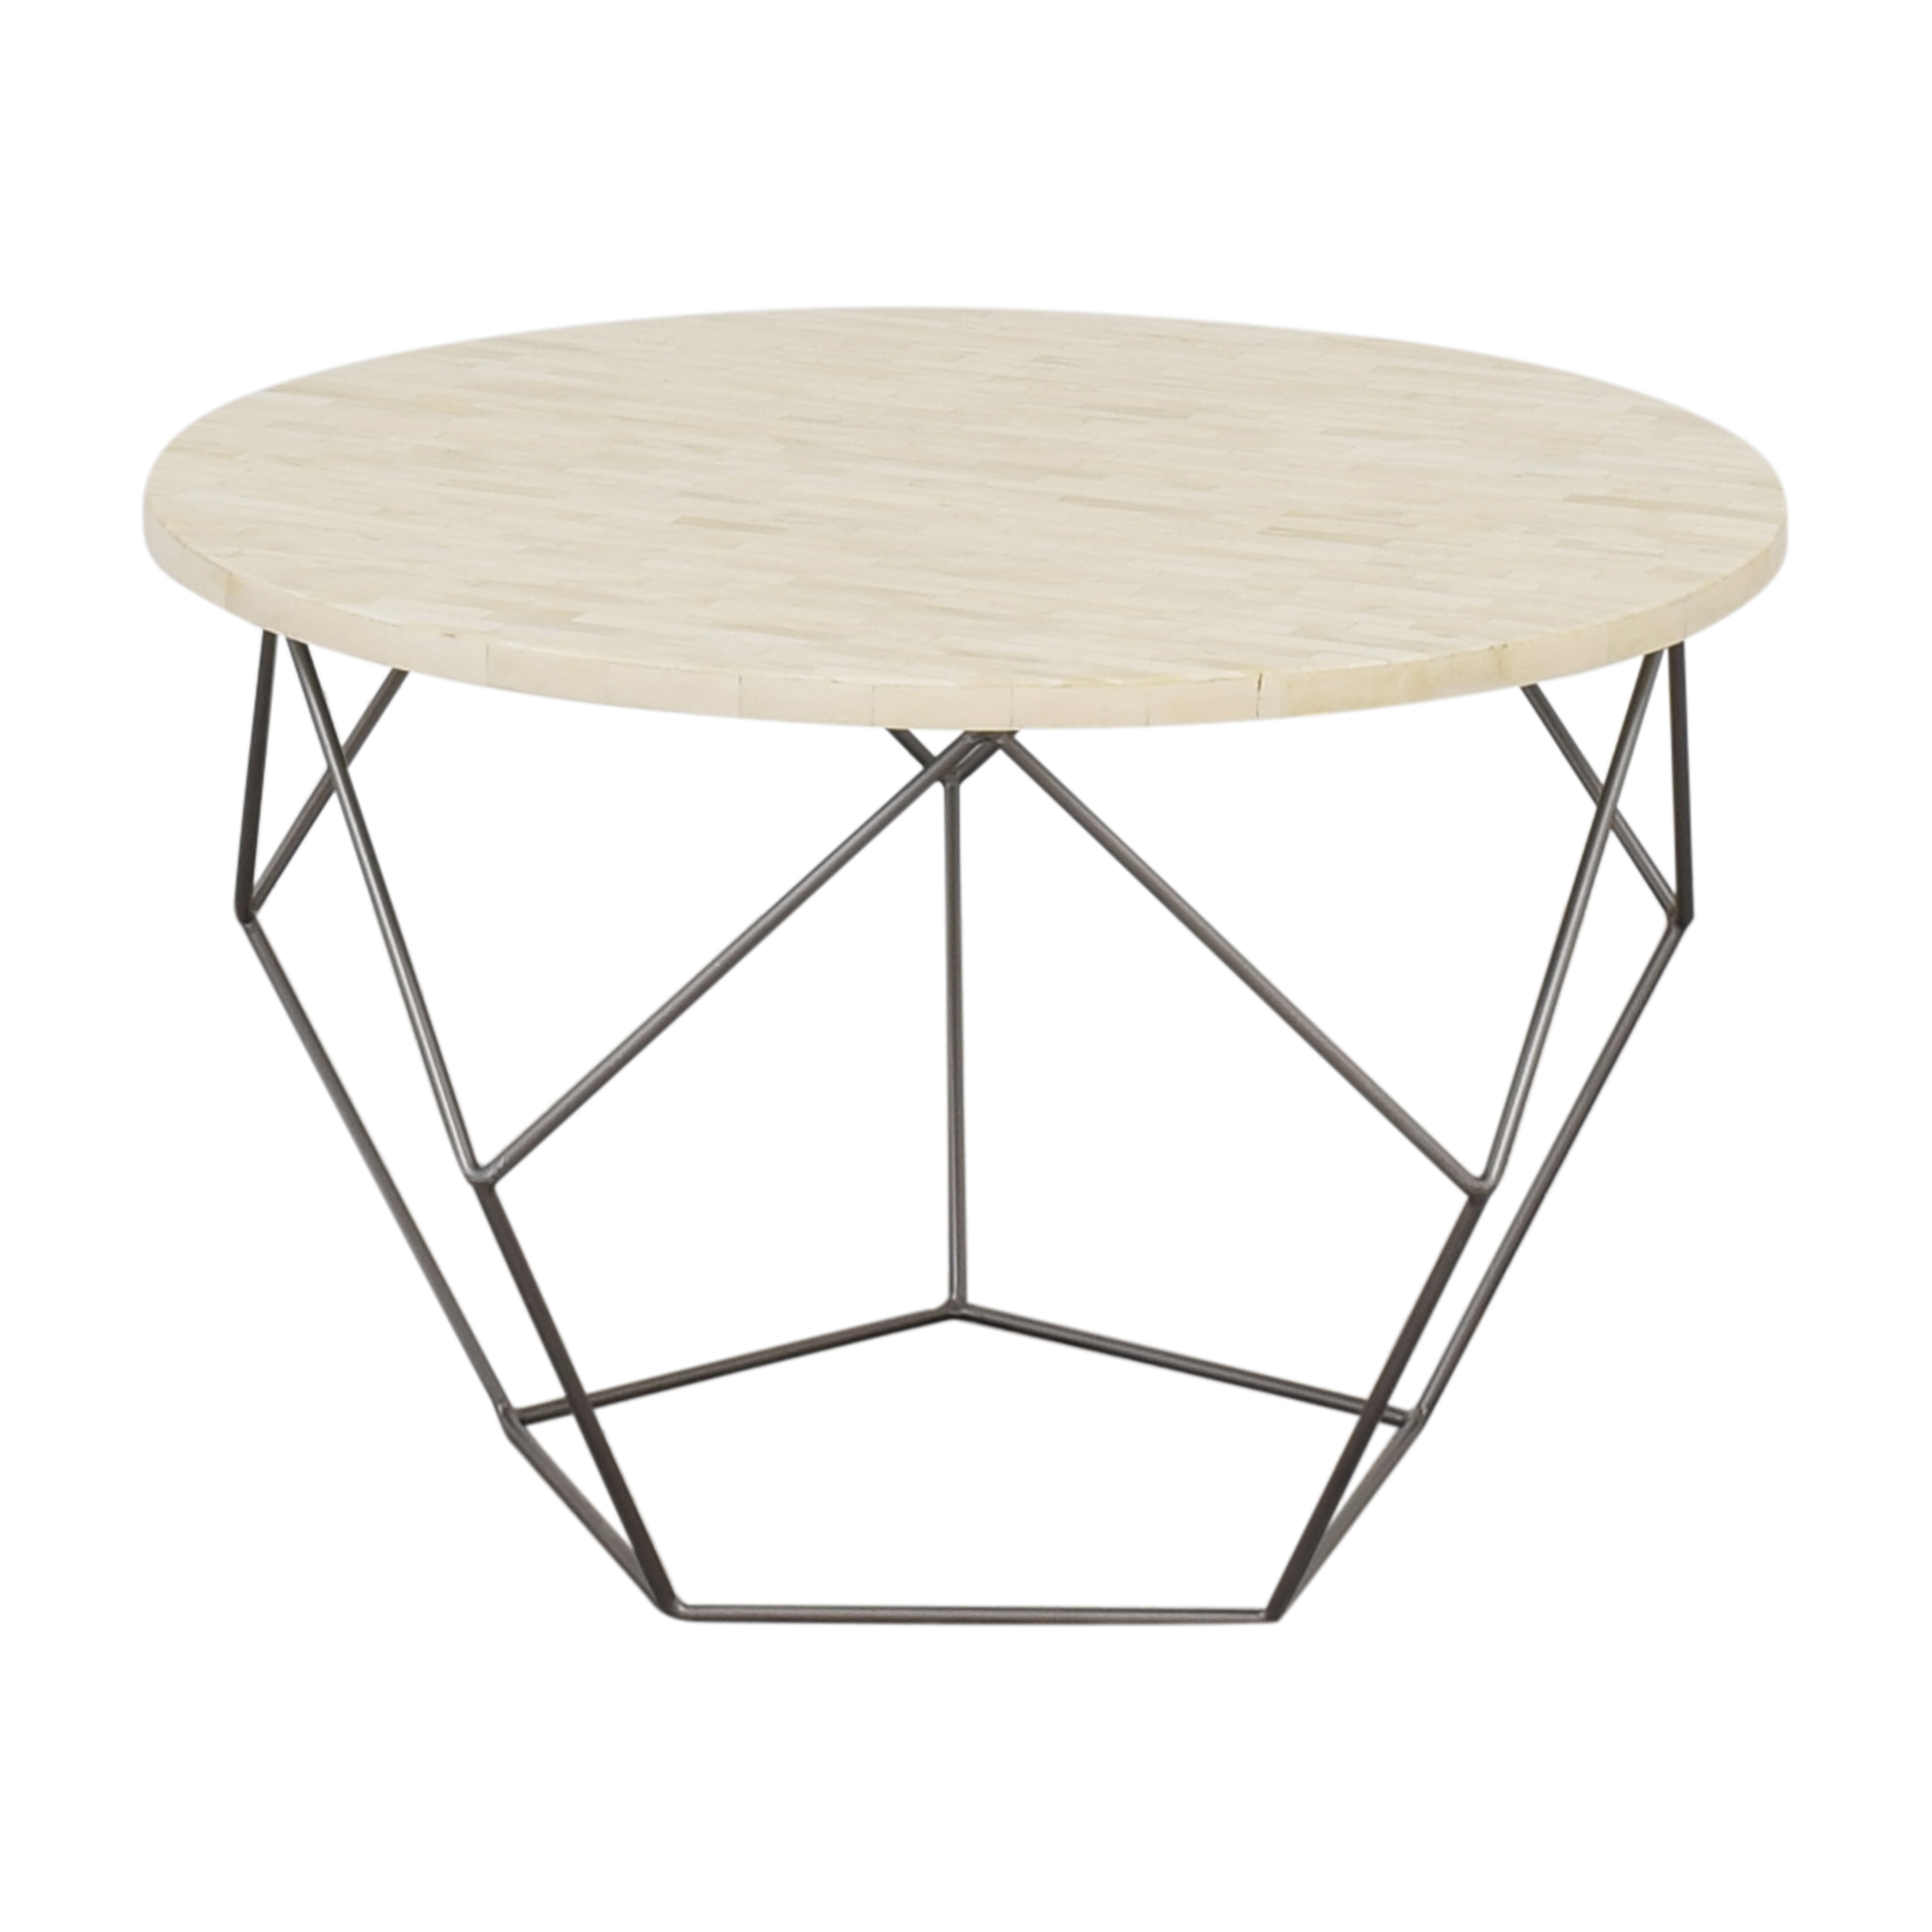 West Elm West Elm Origami Coffee Table ma